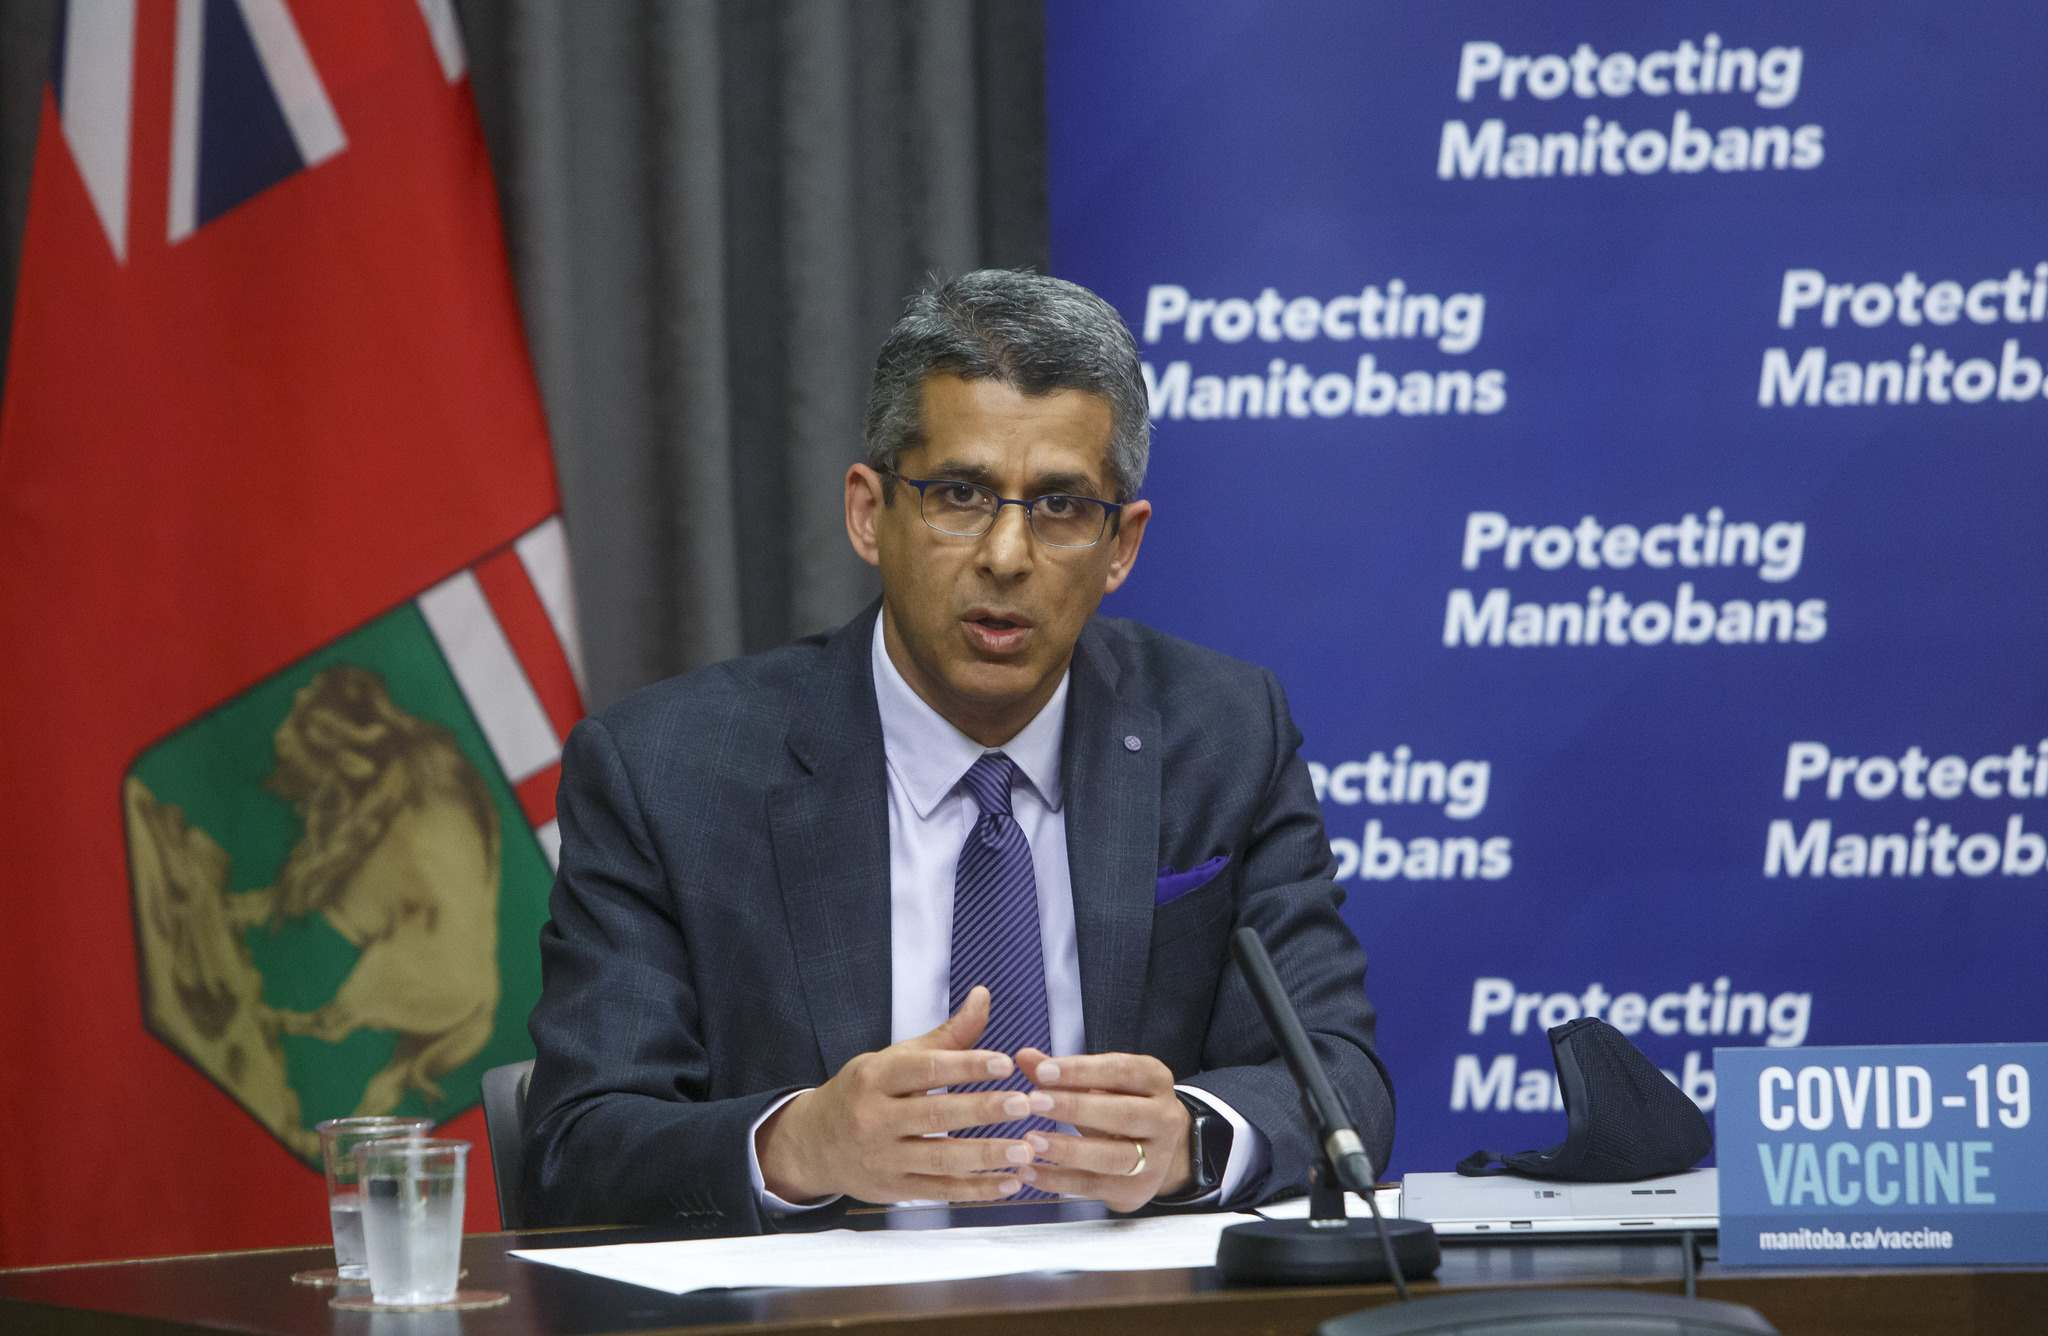 Manitoba Liquor and Lotteries chief executive officer Manny Atwal confirmed that the winners of the Vax to Win Lottery will have their names reported publicly as part of the conditions of the draw. (Mike Deal / Winnipeg Free Press files)</p>